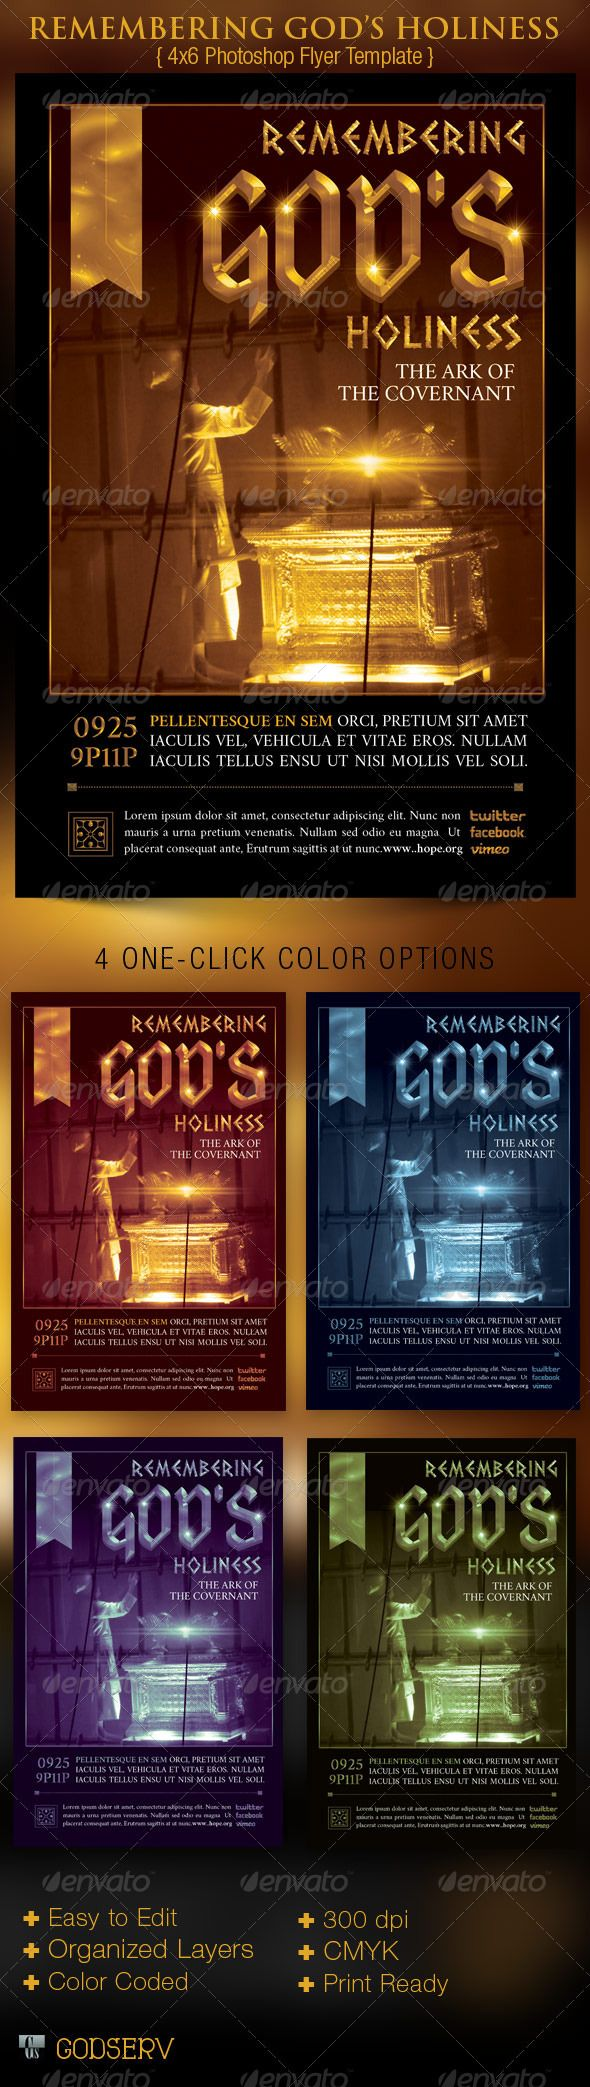 Pray For The City Church Flyer Template | Flyer Template, Churches